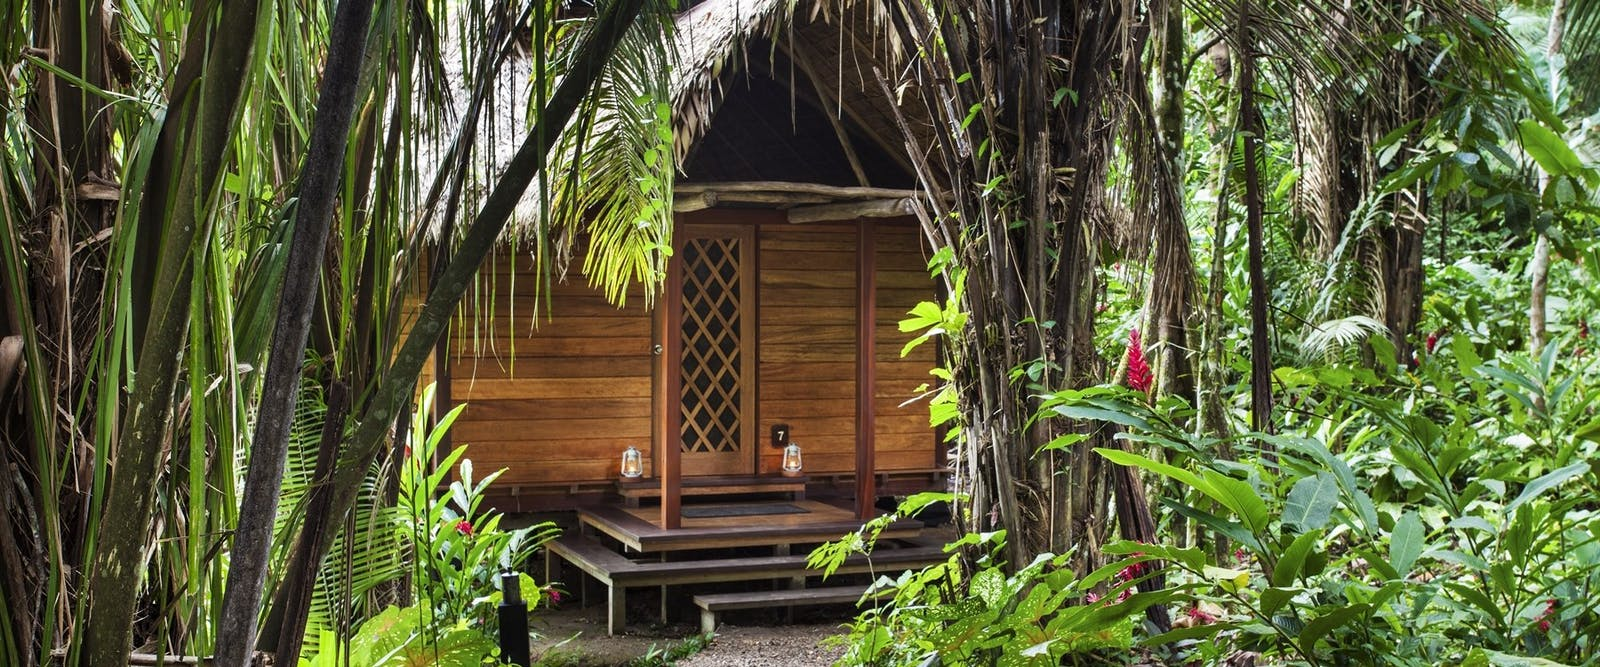 Exterior of cabana at Inkaterra Hacienda Concepcion